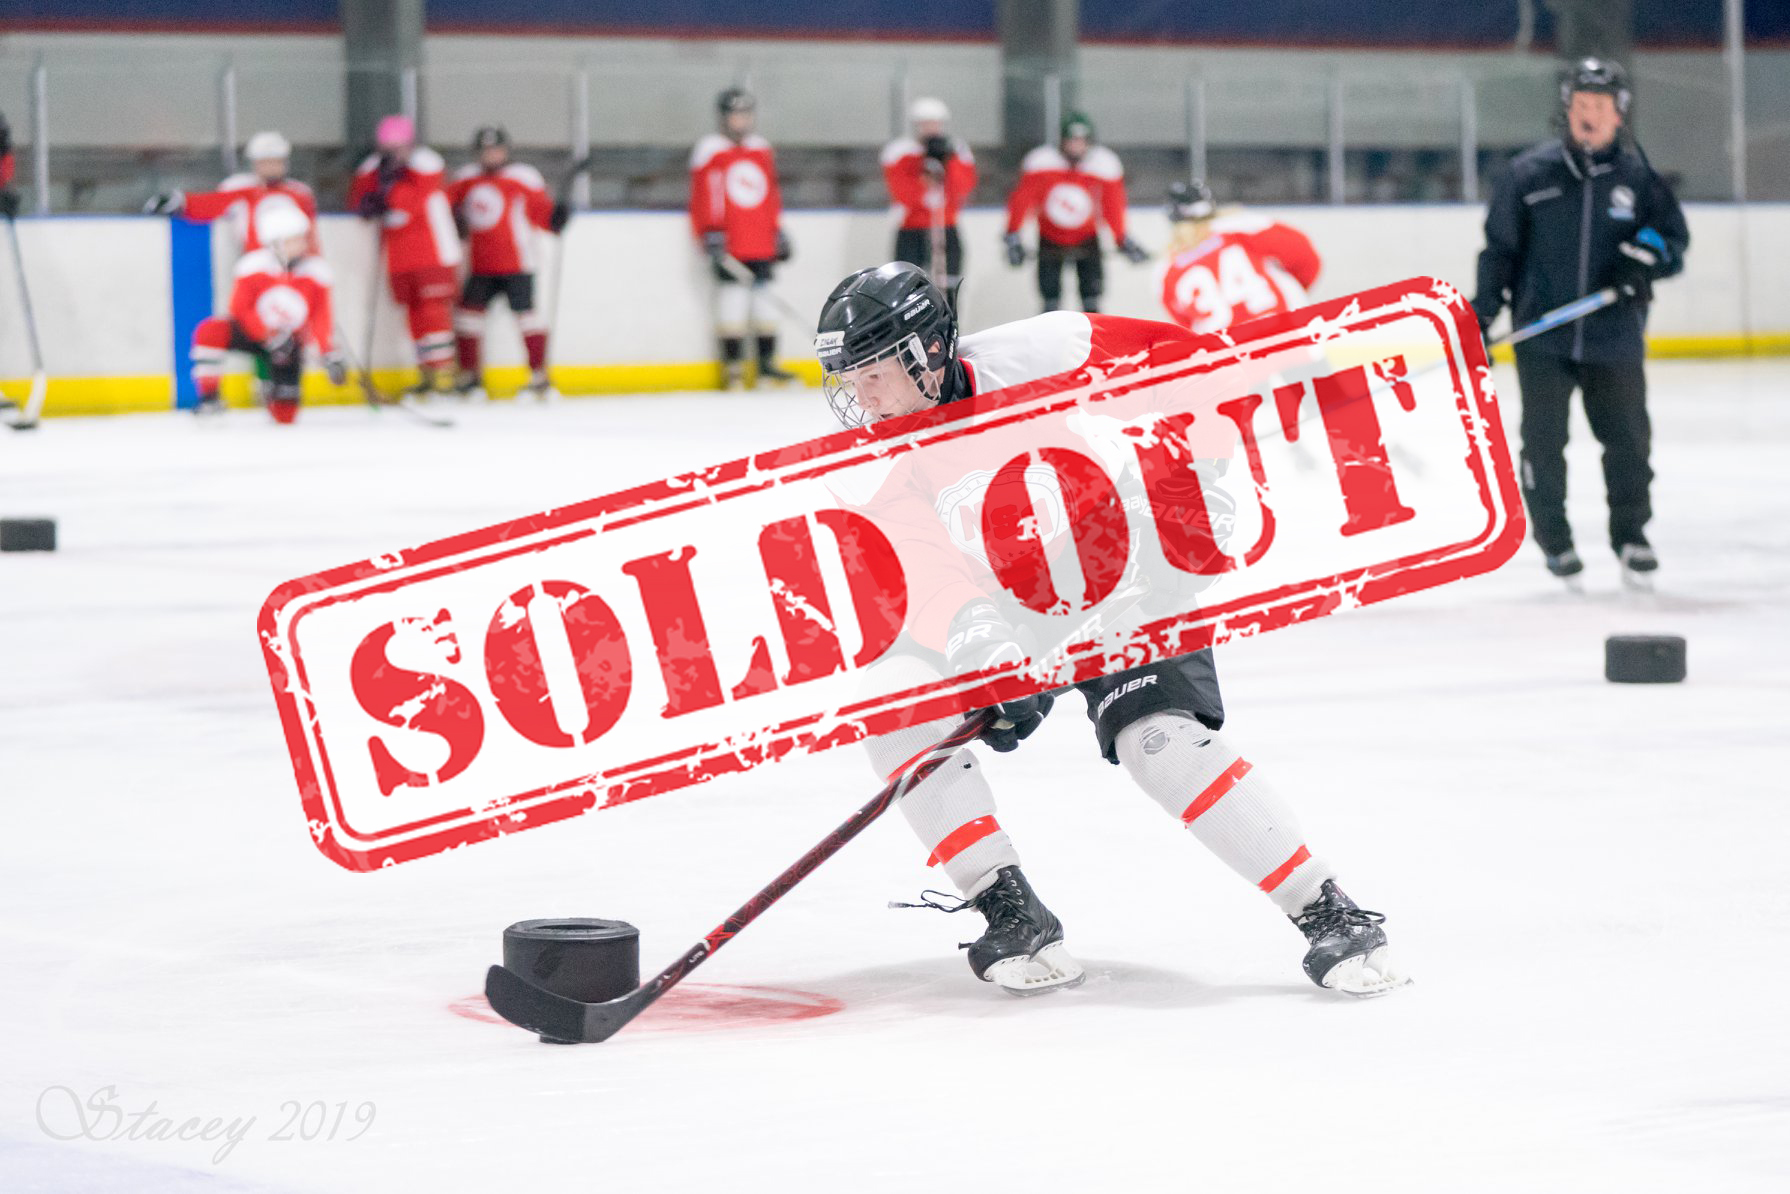 School Hockey Days - Sold Out